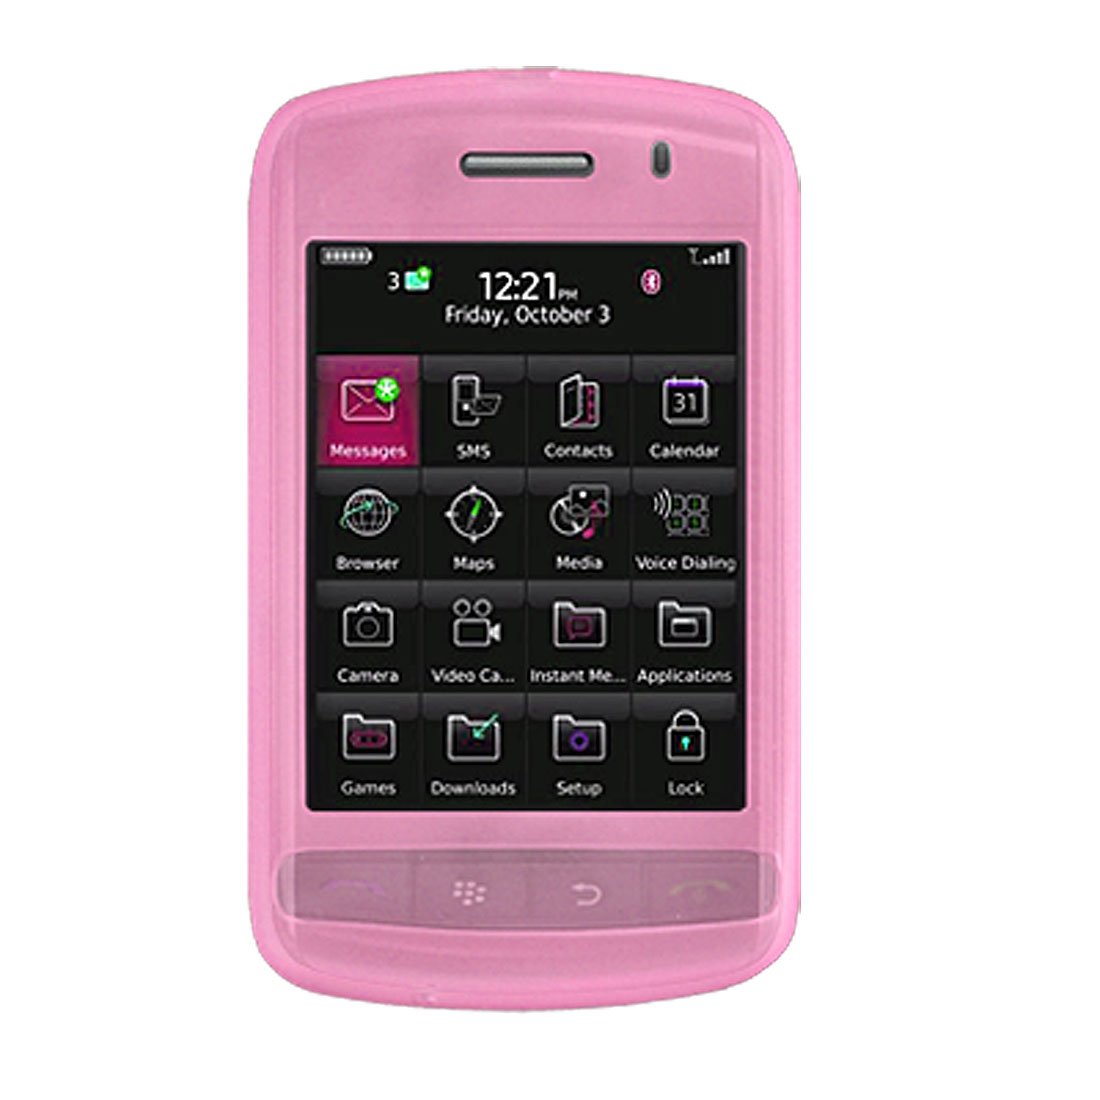 Protector Silicone Case for Blackberry Storm 9500 / 9530